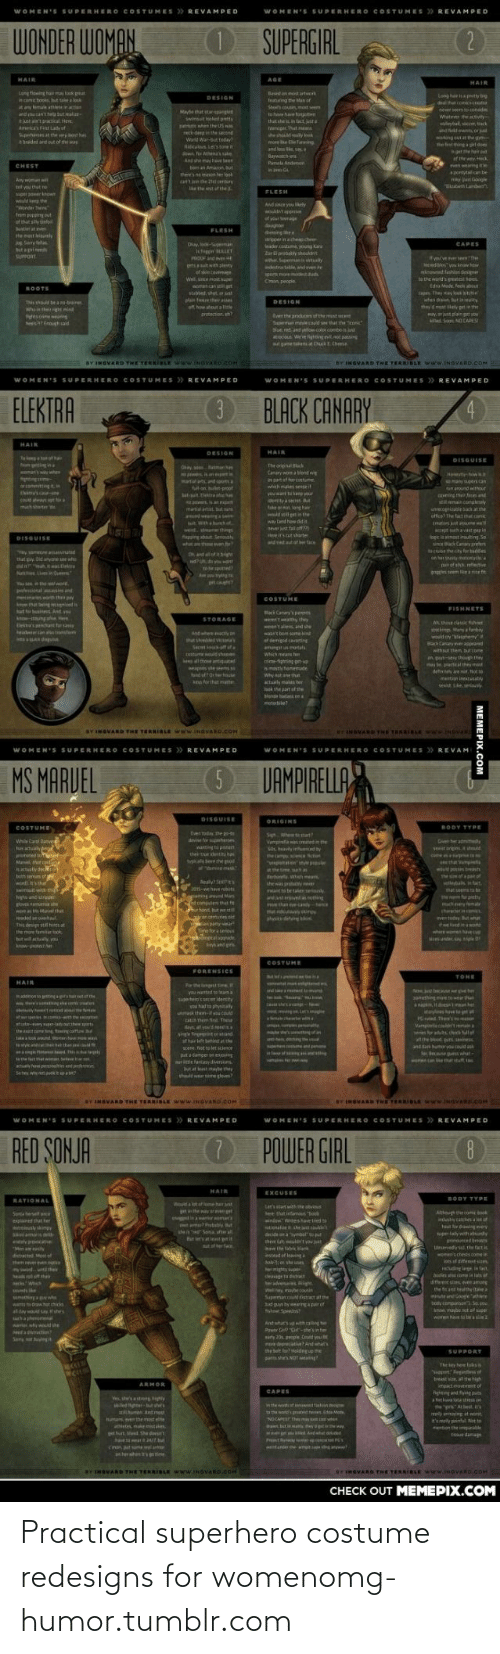 Af, Omg, and Superhero: WOMEN'S SUPERHERO COSTUMES REVAMPED  WOMEN'S SUPERHERO COSTUMES > REVAMPED  (2  WONDER WOMAN  OSUPERGIRL  HAIR  AGE  HAIR  Long tiowing hama took pat  ncame boos, ht el  tay female athleteinactn  and canthel tal  ejust an'tpractical. Here  Aneics Fit Lady of  Suphees the ryt haL  ahraded and out of the was  Besed an ost artor  tong hepntty b  DESIGN  feing the Man of  Ste musin mat sem  lo h hae fr n  that shein tact.ja  tniper. That me  6shodrely ok  m e Beaning  dthatconksae  newr seem onede  Whatee the vy  Mayehat starsgangv  wimst lked putts  T hen the US w  voleytal c, ack  ndet ewnt orat  NOking eutat the gm  etthing a gte  reck-deen in the seond  Warld War-sut tod  Riculs Lets toeit  and less ie sa  Baywahe  e  ger she hair  f the wyck  venangite  pntyta be  Anshe mh ee  t an Amaun tut  Pamela Andenan  CHEST  there's nemon her look  an't inthe 2et cerary  le the est f the  Any wom w  zatth Lab  tet you chut  FLESH  wuld e the  nd since you liy  onder Tin  trem popping ut  of that sly tifpl  of your tnge  daughter  eing he  rppernchep.ch  ader.costm young Ka  Zor E pabakly shoukdt  wer. Smanitlly  metrata anden  Suntier e  FLESH  te met l  Sery la  but a pi  CAPES  unuts- Weo  khigen LLET  PROF nd et  yve erem The  diles yos kowow  knwd fhist desner  p it with plenty  of in toege  We, oit ge  aomencan et  stabbed shot t  pos noremodest.ud  Cmn pecple  wewuidseutesthees  dna Mad. fe ut  BOOTS  con They ay lon itin  when draw but i ty  plam feee ther se  of how ahout a e  arotection h?  DESIGN  This should be a nabainer  they d mest ikely petin the  Whain theig  hse neain  esi Ennigh aid  ni  ay tain get you  Mled S NO CARES  Evethe ardutnof the mst  Supurma malecd seethat the one  Nut. red and ytiow color comoj  acou Weigtongenot pansing  at amete at CukEChme  BY INGVARD THE TERRIBLE www.NOVAROCOH  BY INGVARD THE TERRIBLE www.INSVARD COH  WOMEN'S SUPERHERO COSTUMES > REVAMPED  WOMEN'S SUPERHERO COSTUMES >> REVAMPED  3BLACK CANARY  ELEKTR